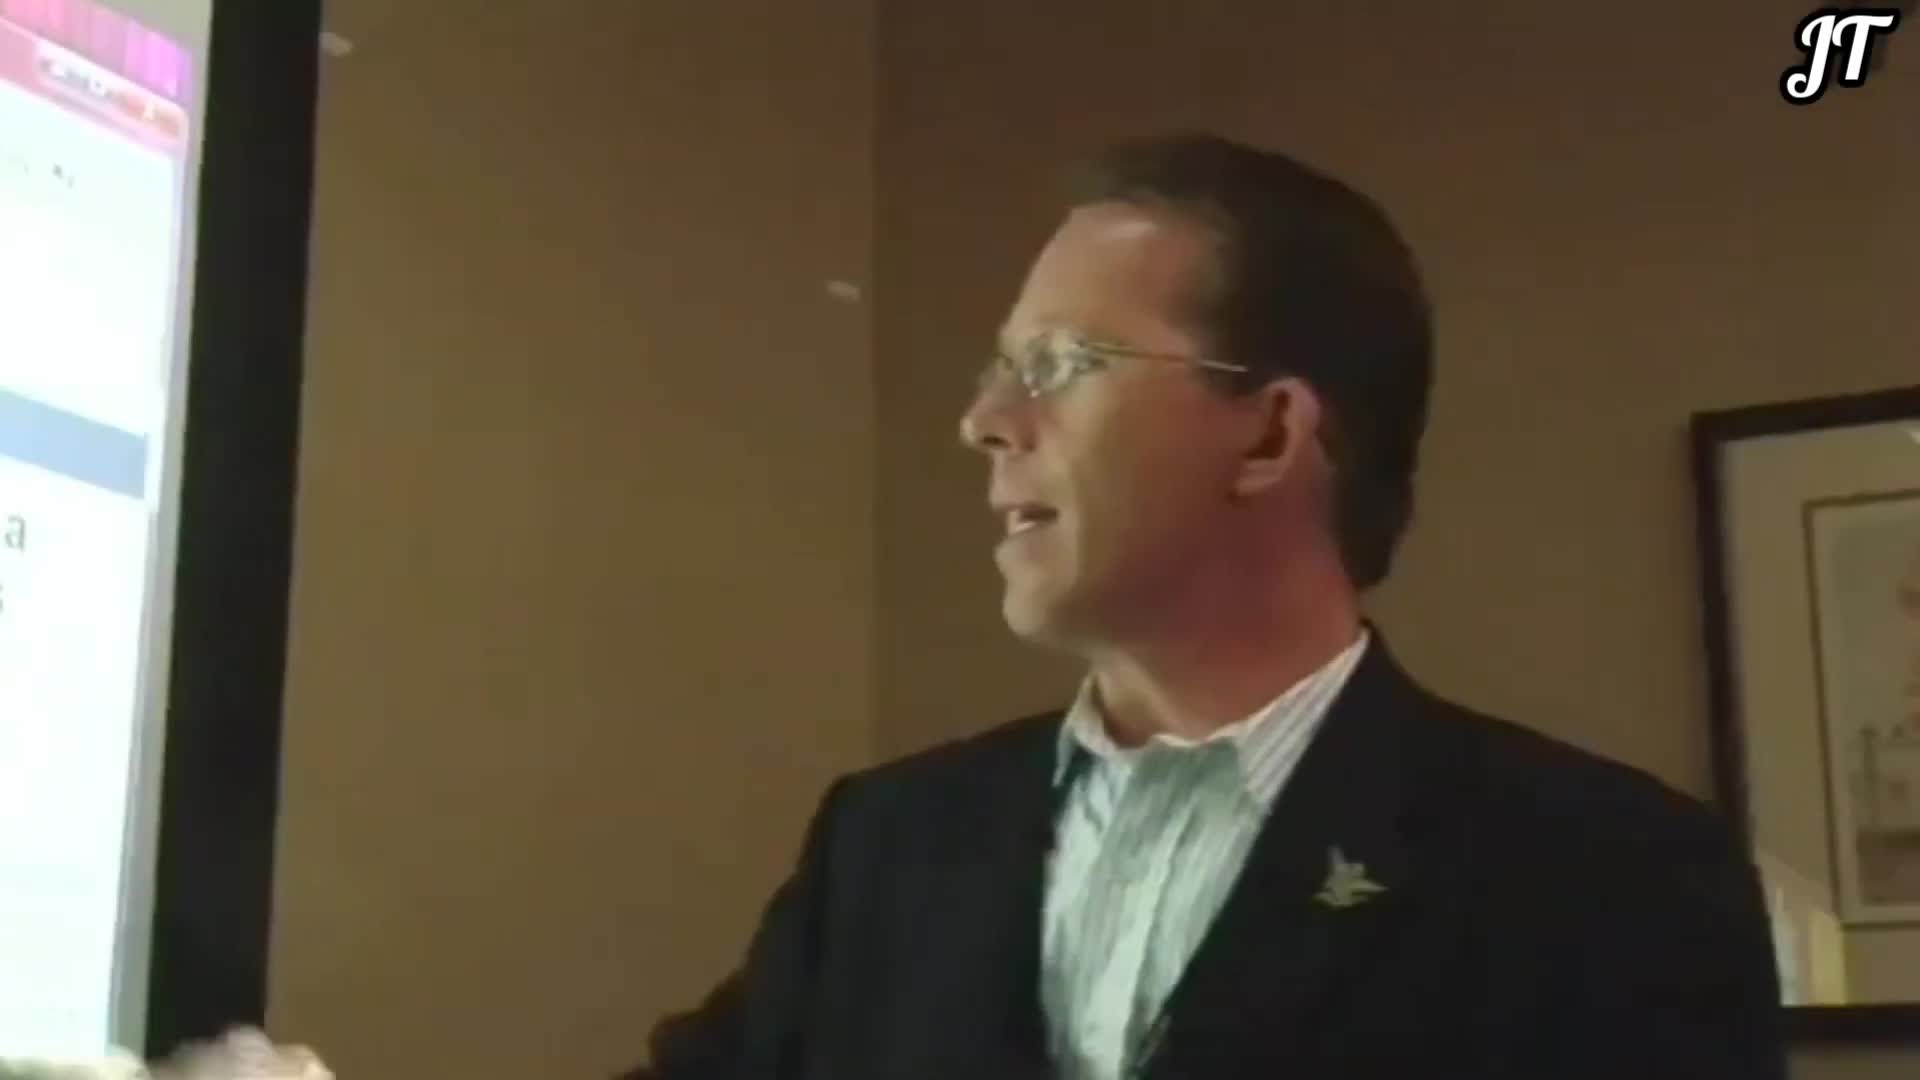 SENOMYX BIO TECHNOLOGY COMPANY (They Put Aborted Fetal Cells in our Food)